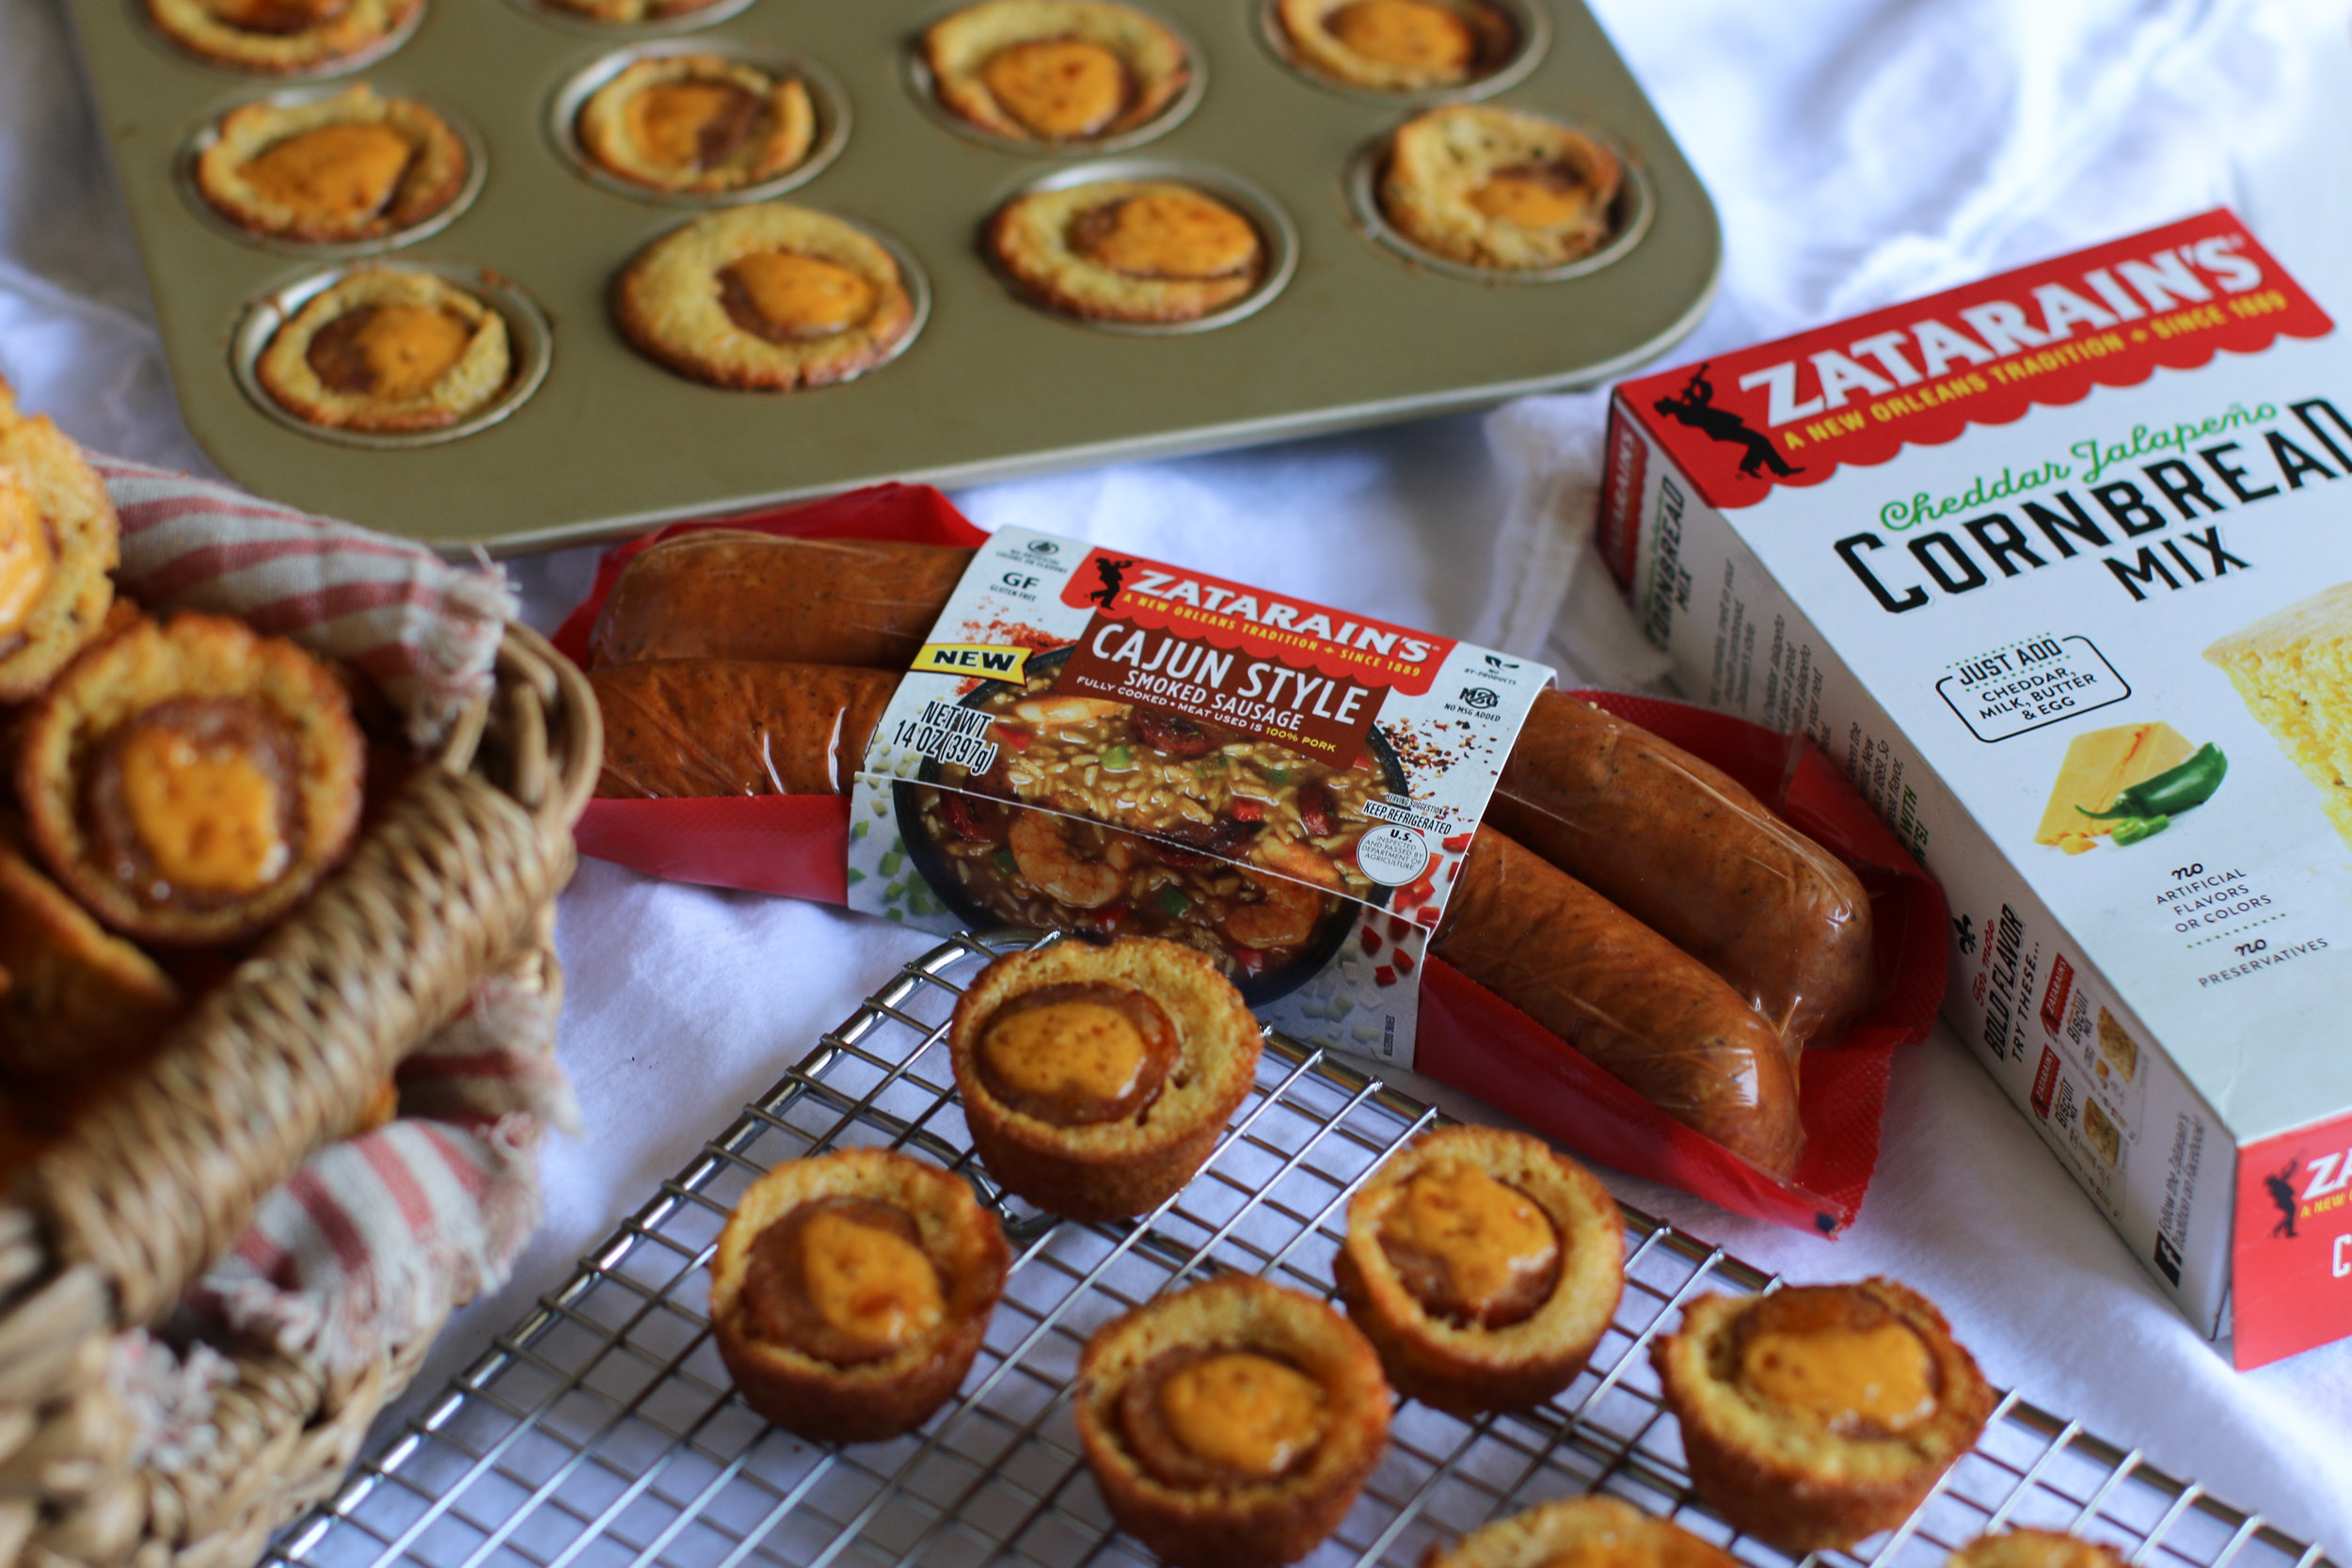 Zatarain's for breakfast? - These Cornbread Sausage Poppers will get you up and at it!